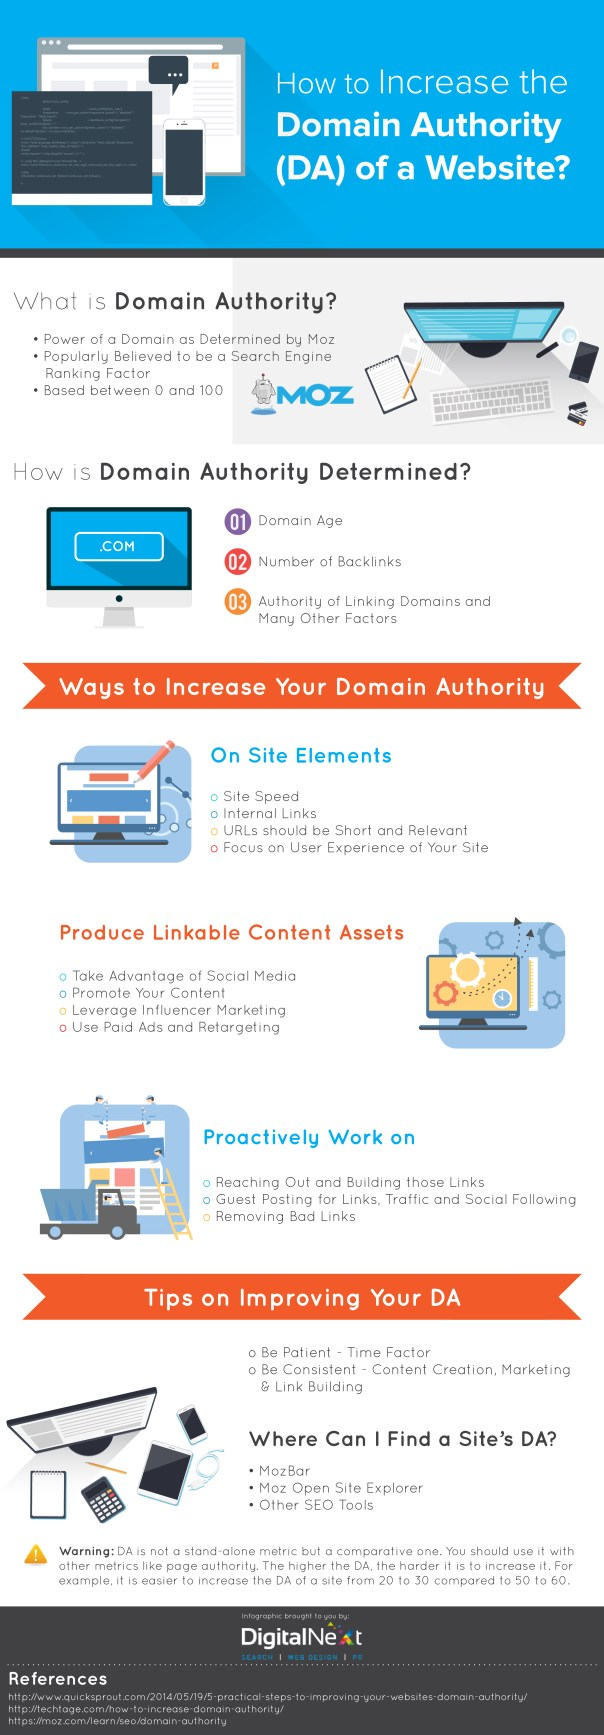 11-Practical-Ways-to-Increase-Domain-Authority-DA-of-a-Website-Infographic